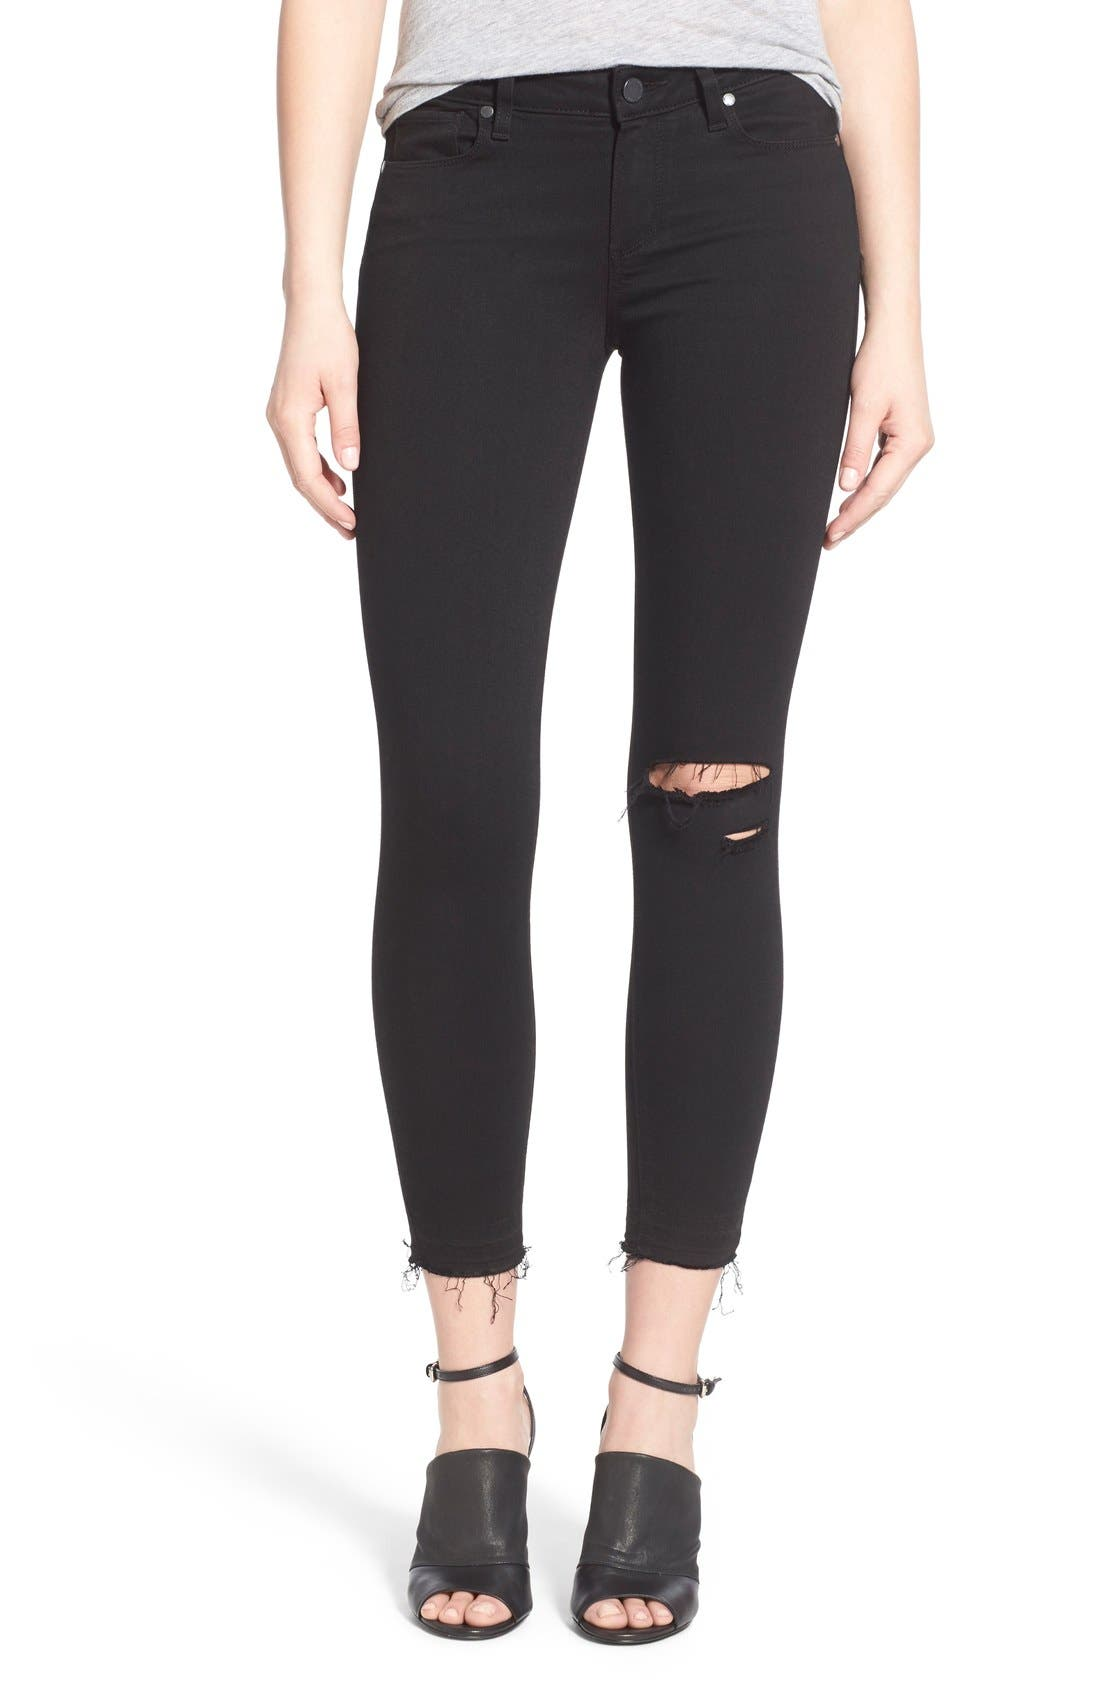 Transcend - Verdugo Crop Skinny Jeans,                         Main,                         color, Black Destructed